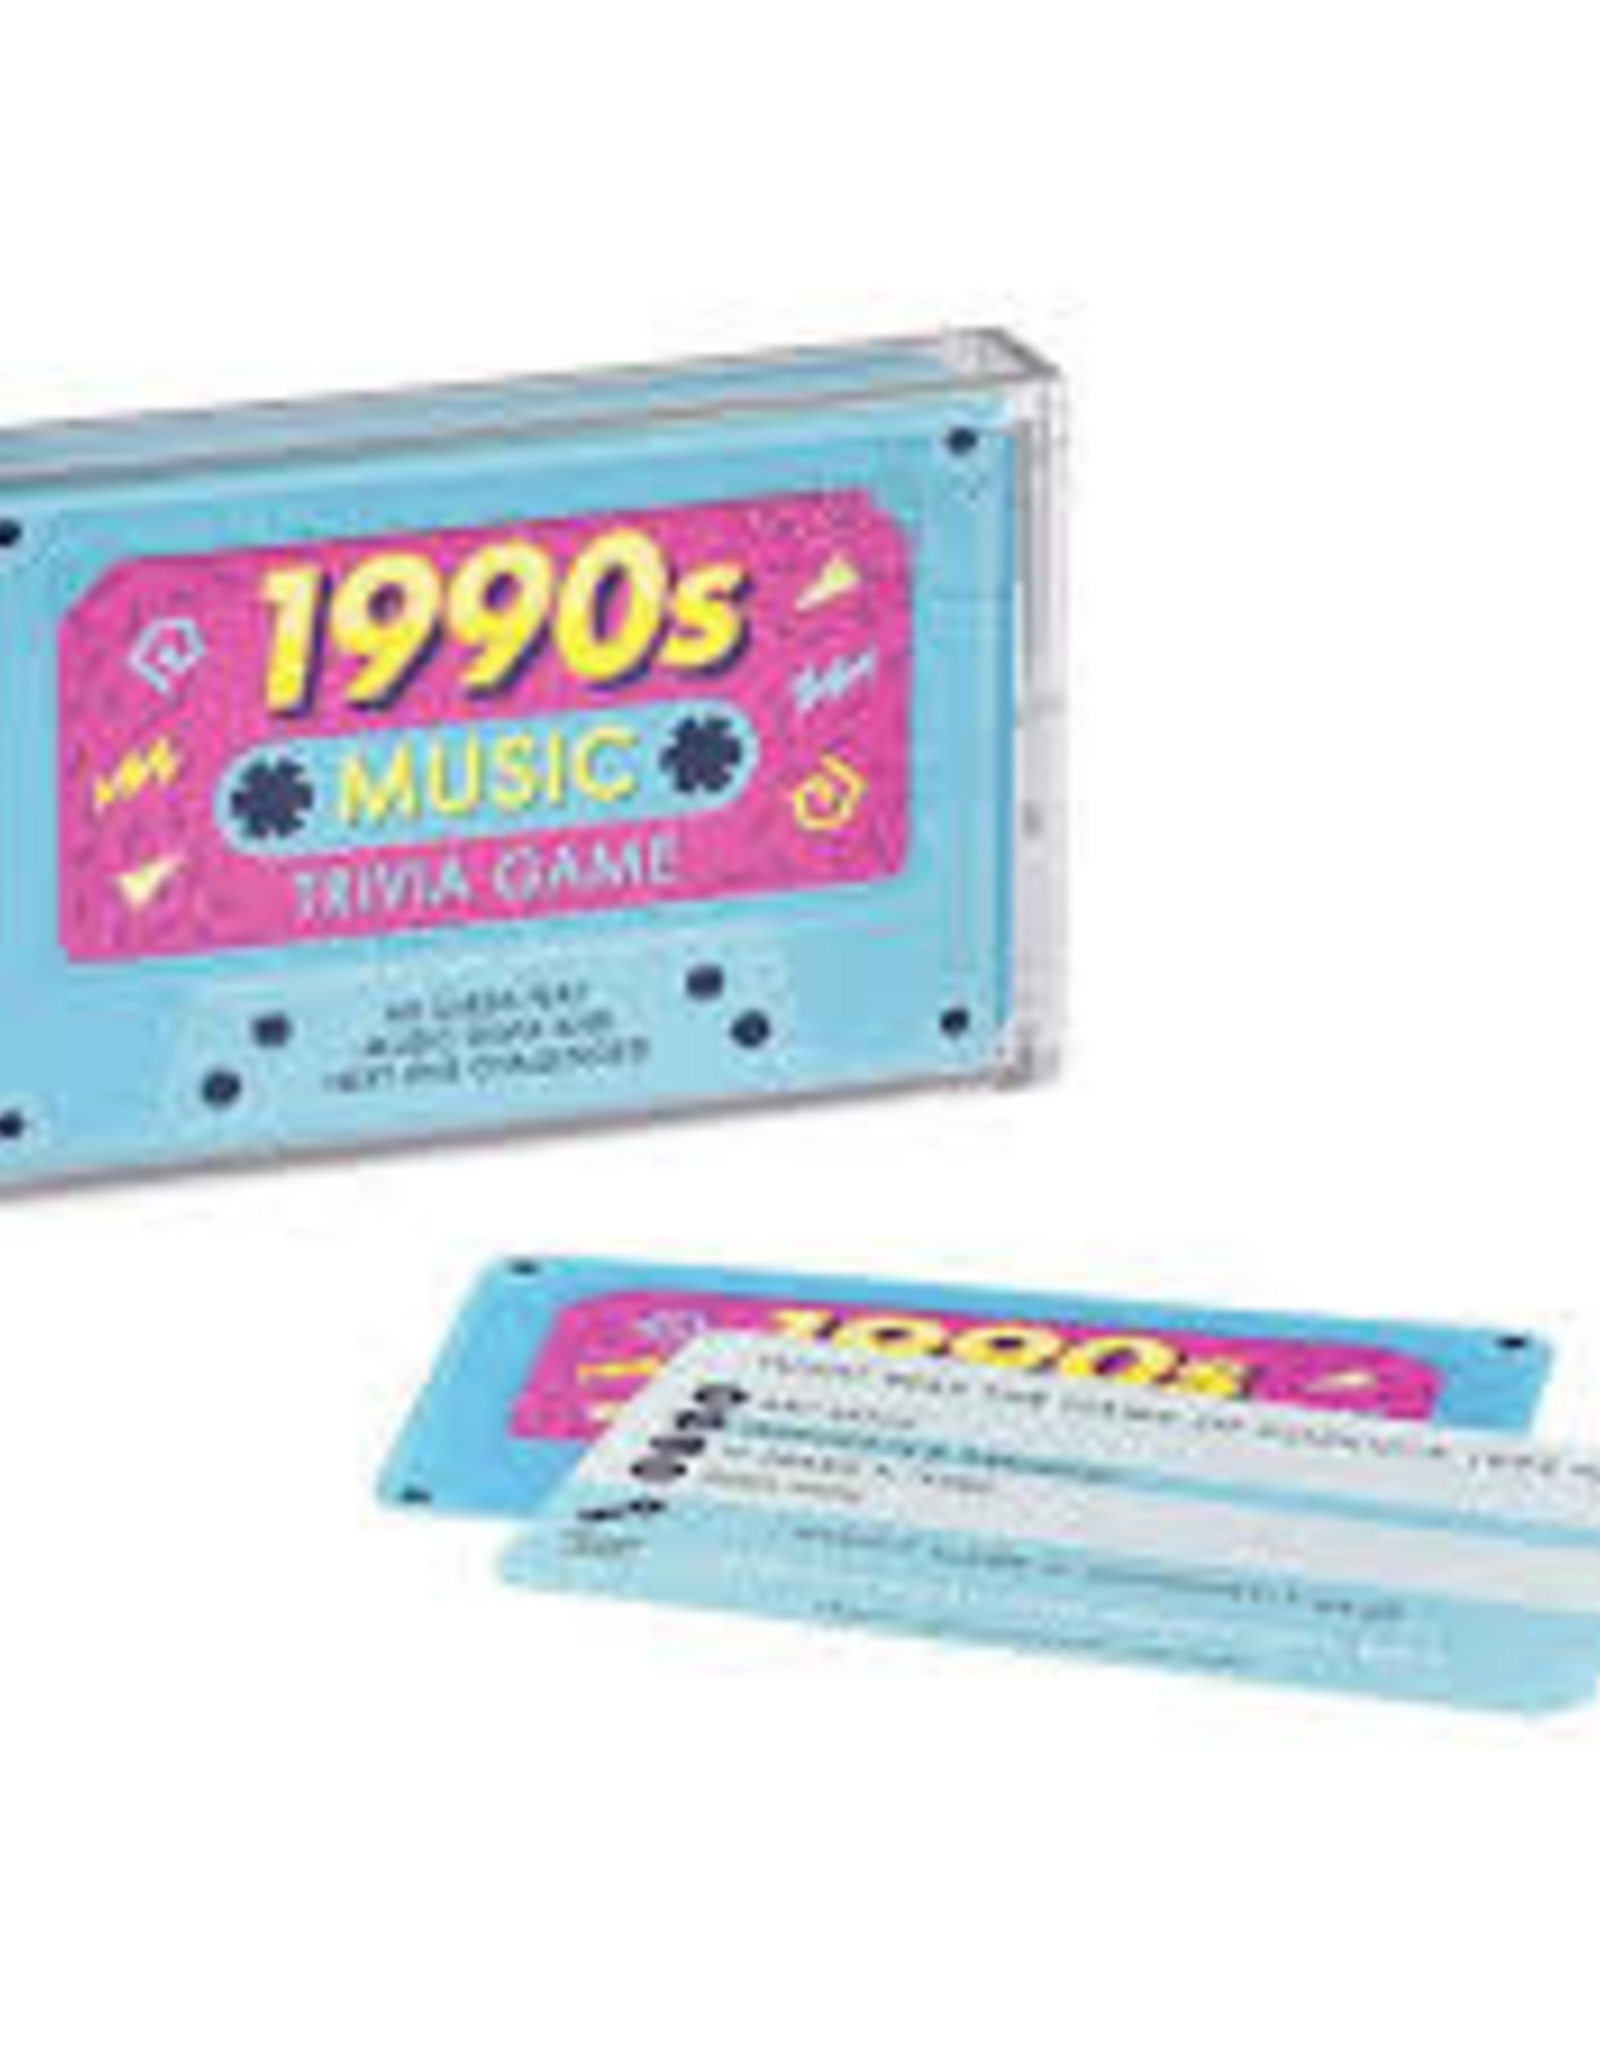 Ridley's 1990S MUSIC TRIVIA GAME